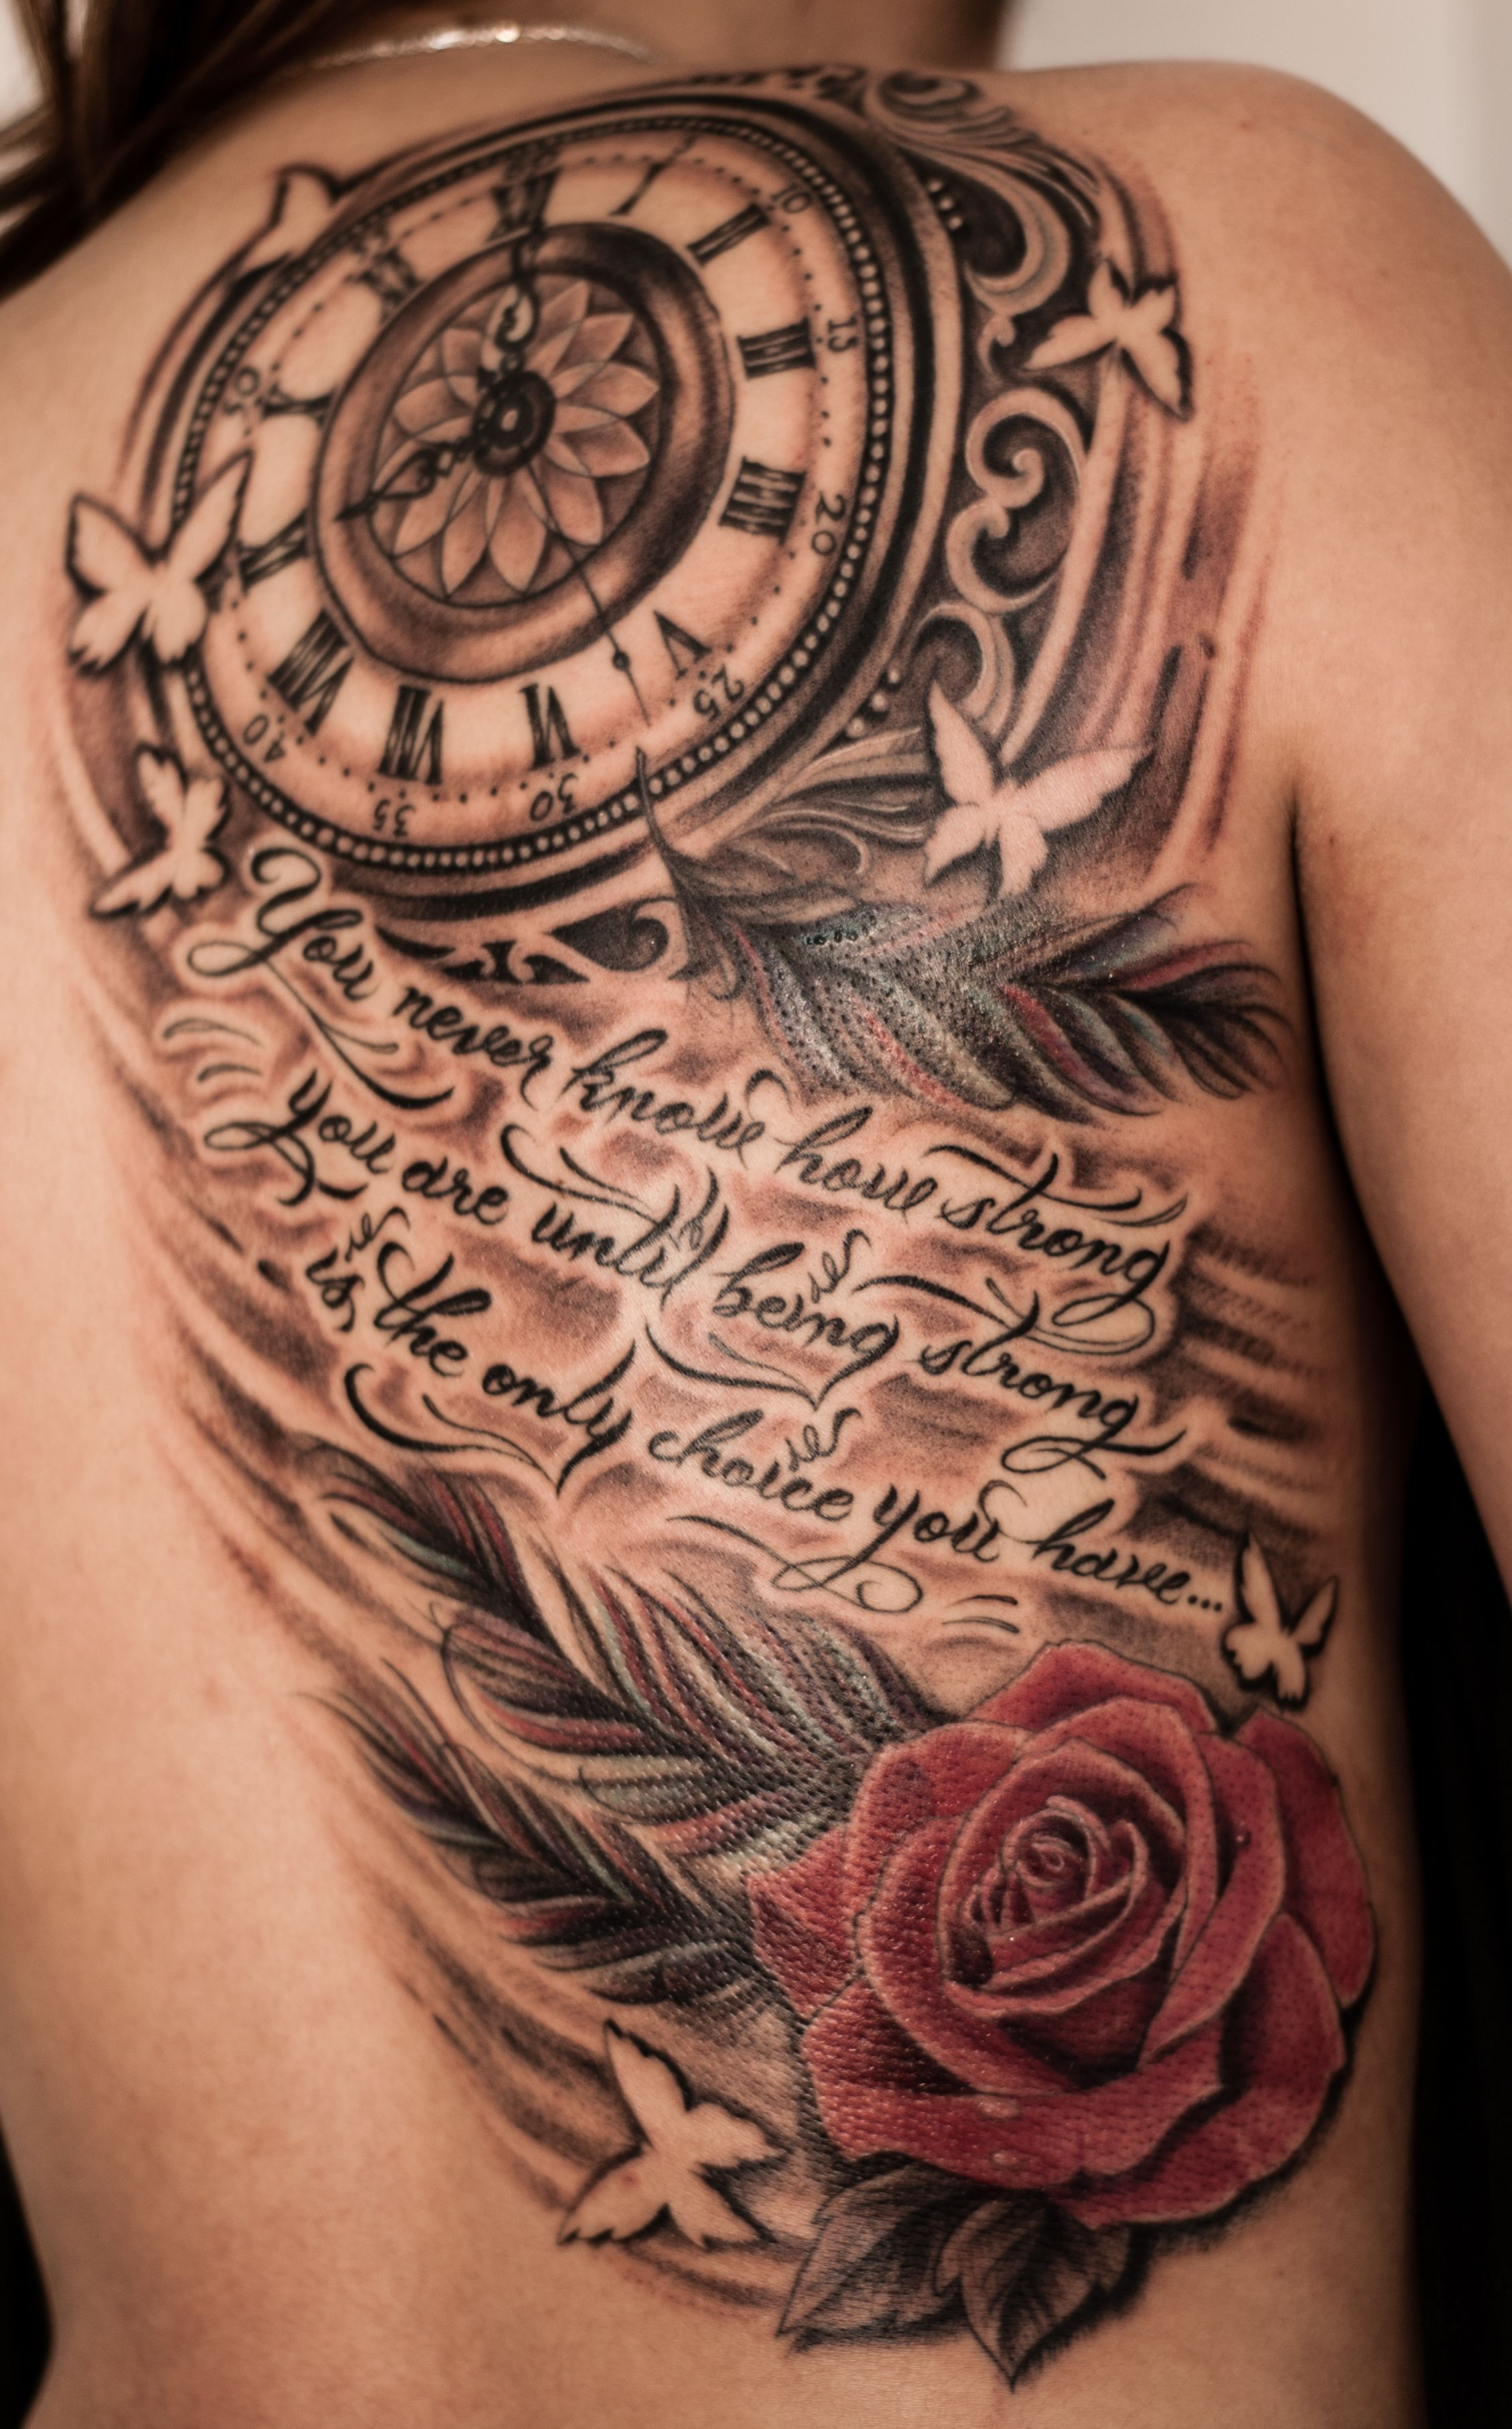 Clock forearm black rose sleeve tattoo - Tattoo On Pinterest Clock Tattoos Google Search And More